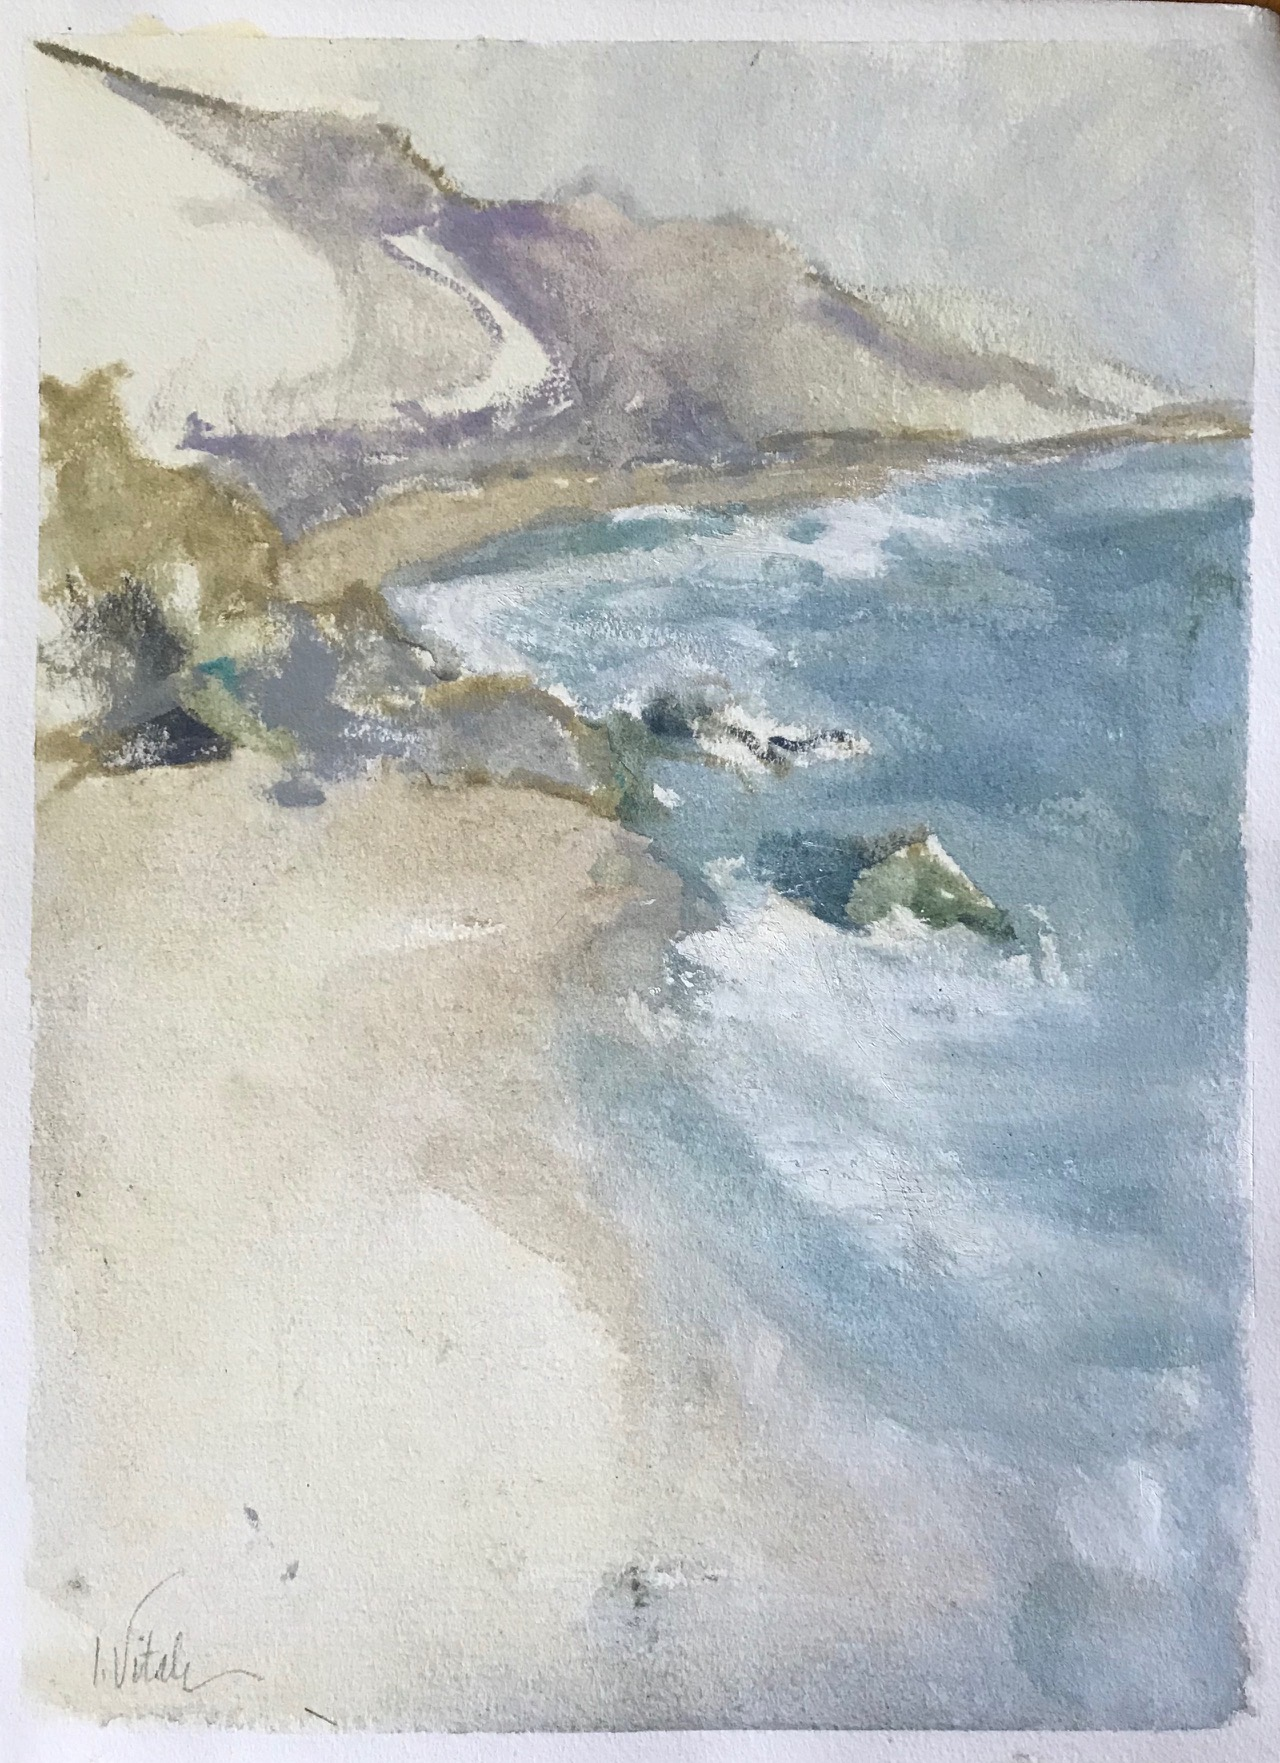 Plein+Air+Collection%2C+Malibu+Coast+in+the+Morning%2C+watercolor%2C+9+x+12%2522+by+Irene+Vitale+%24400..jpg